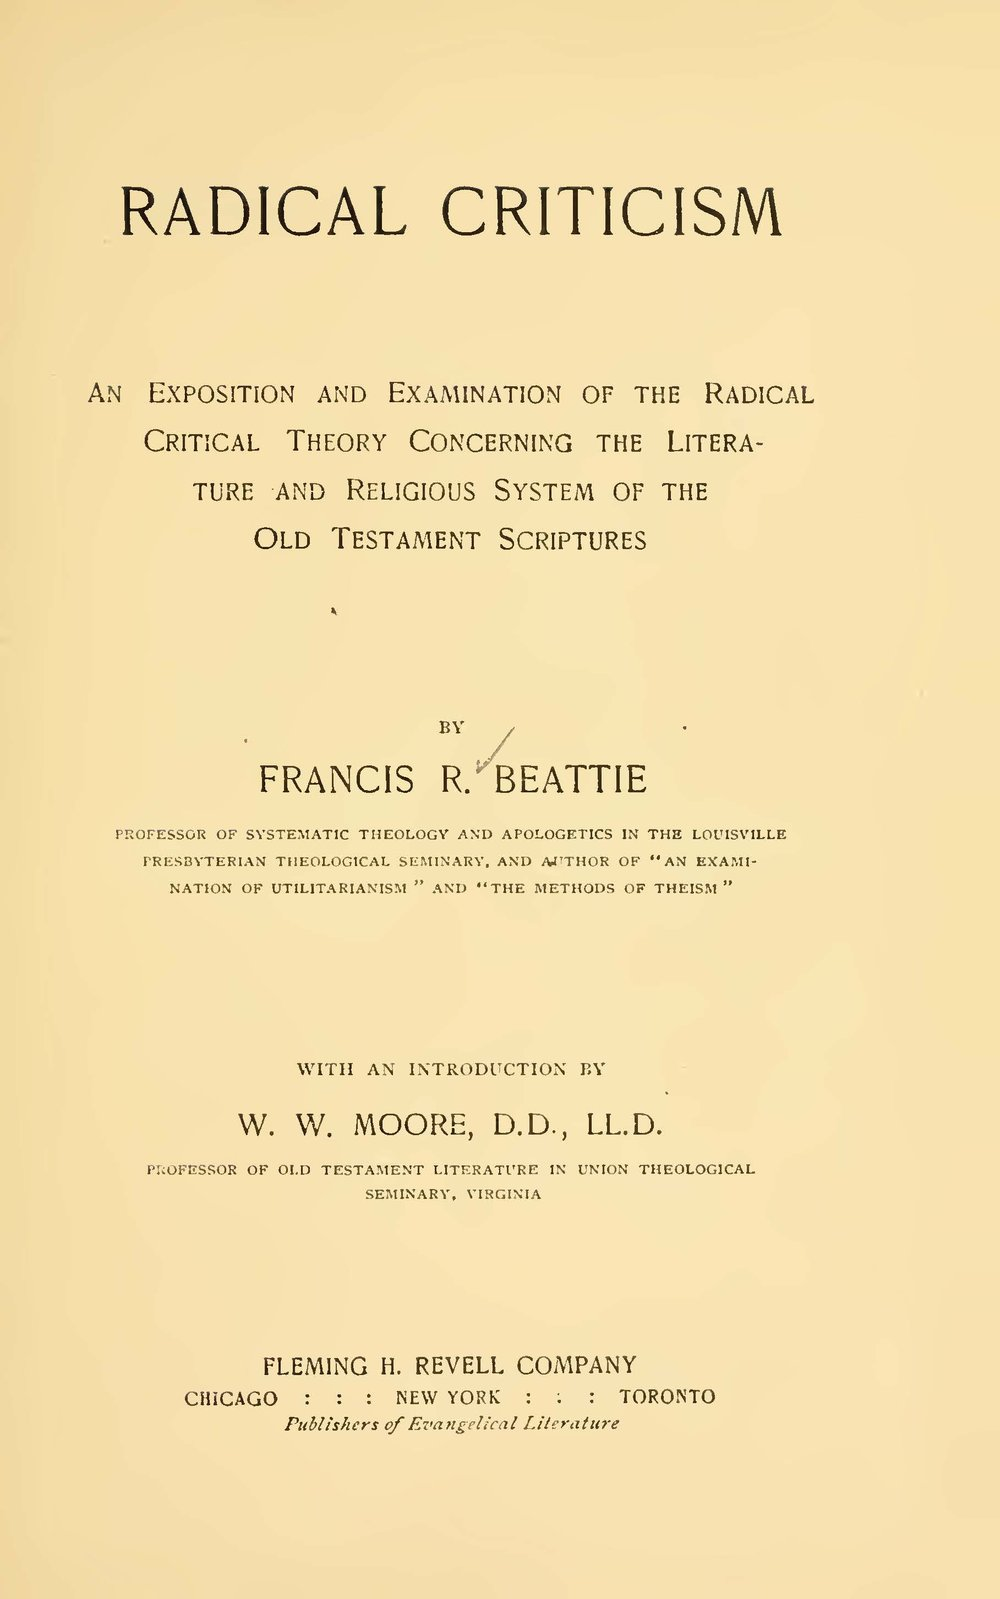 Beattie, Francis Robert, Radical Criticism Title Page.jpg